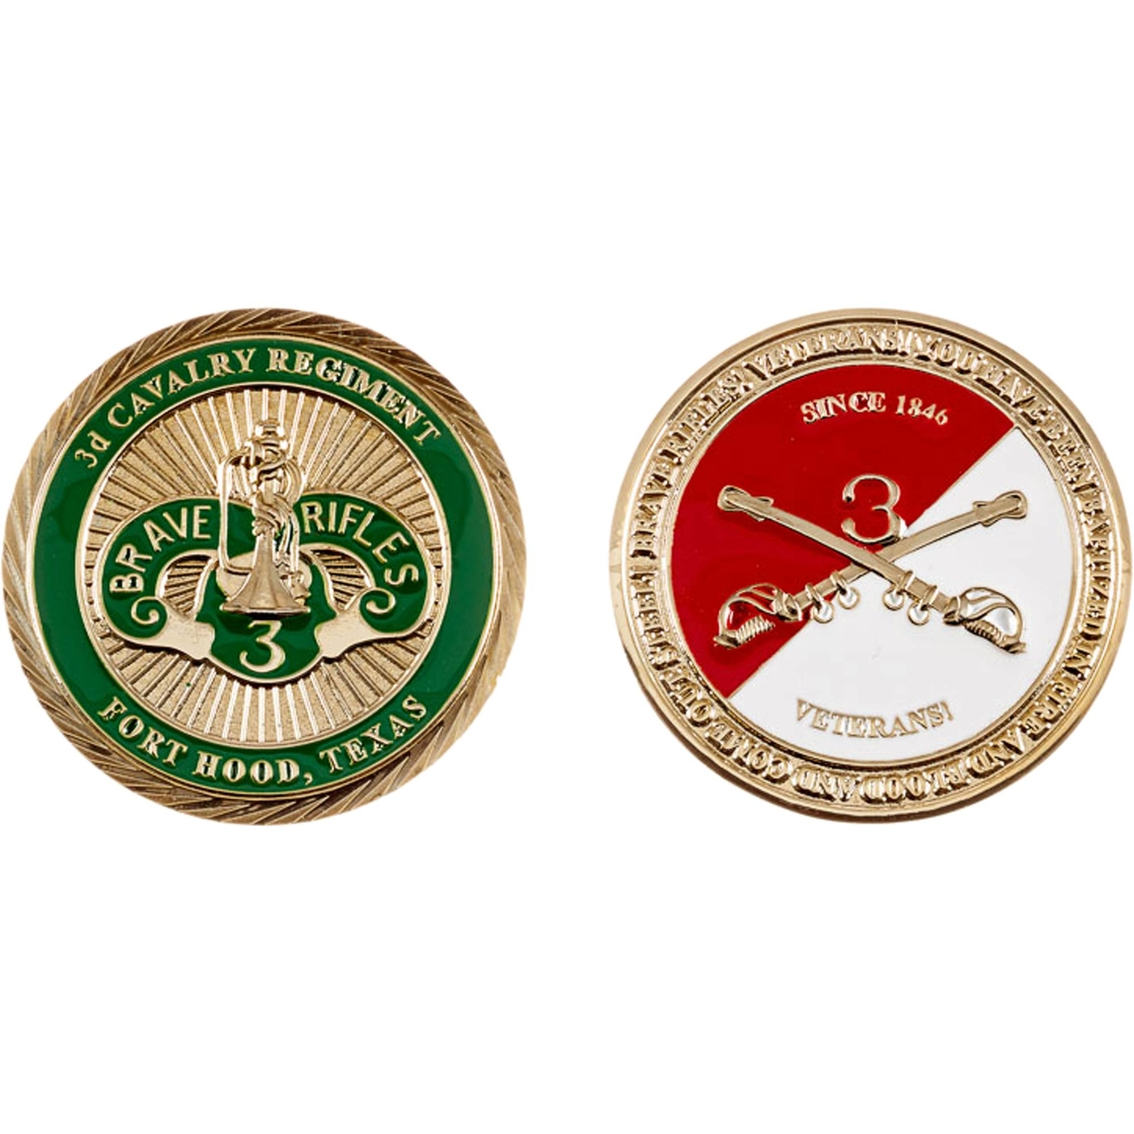 Challenge Coin Ft  Hood 3rd Cavalry Coin | Coins & Cases